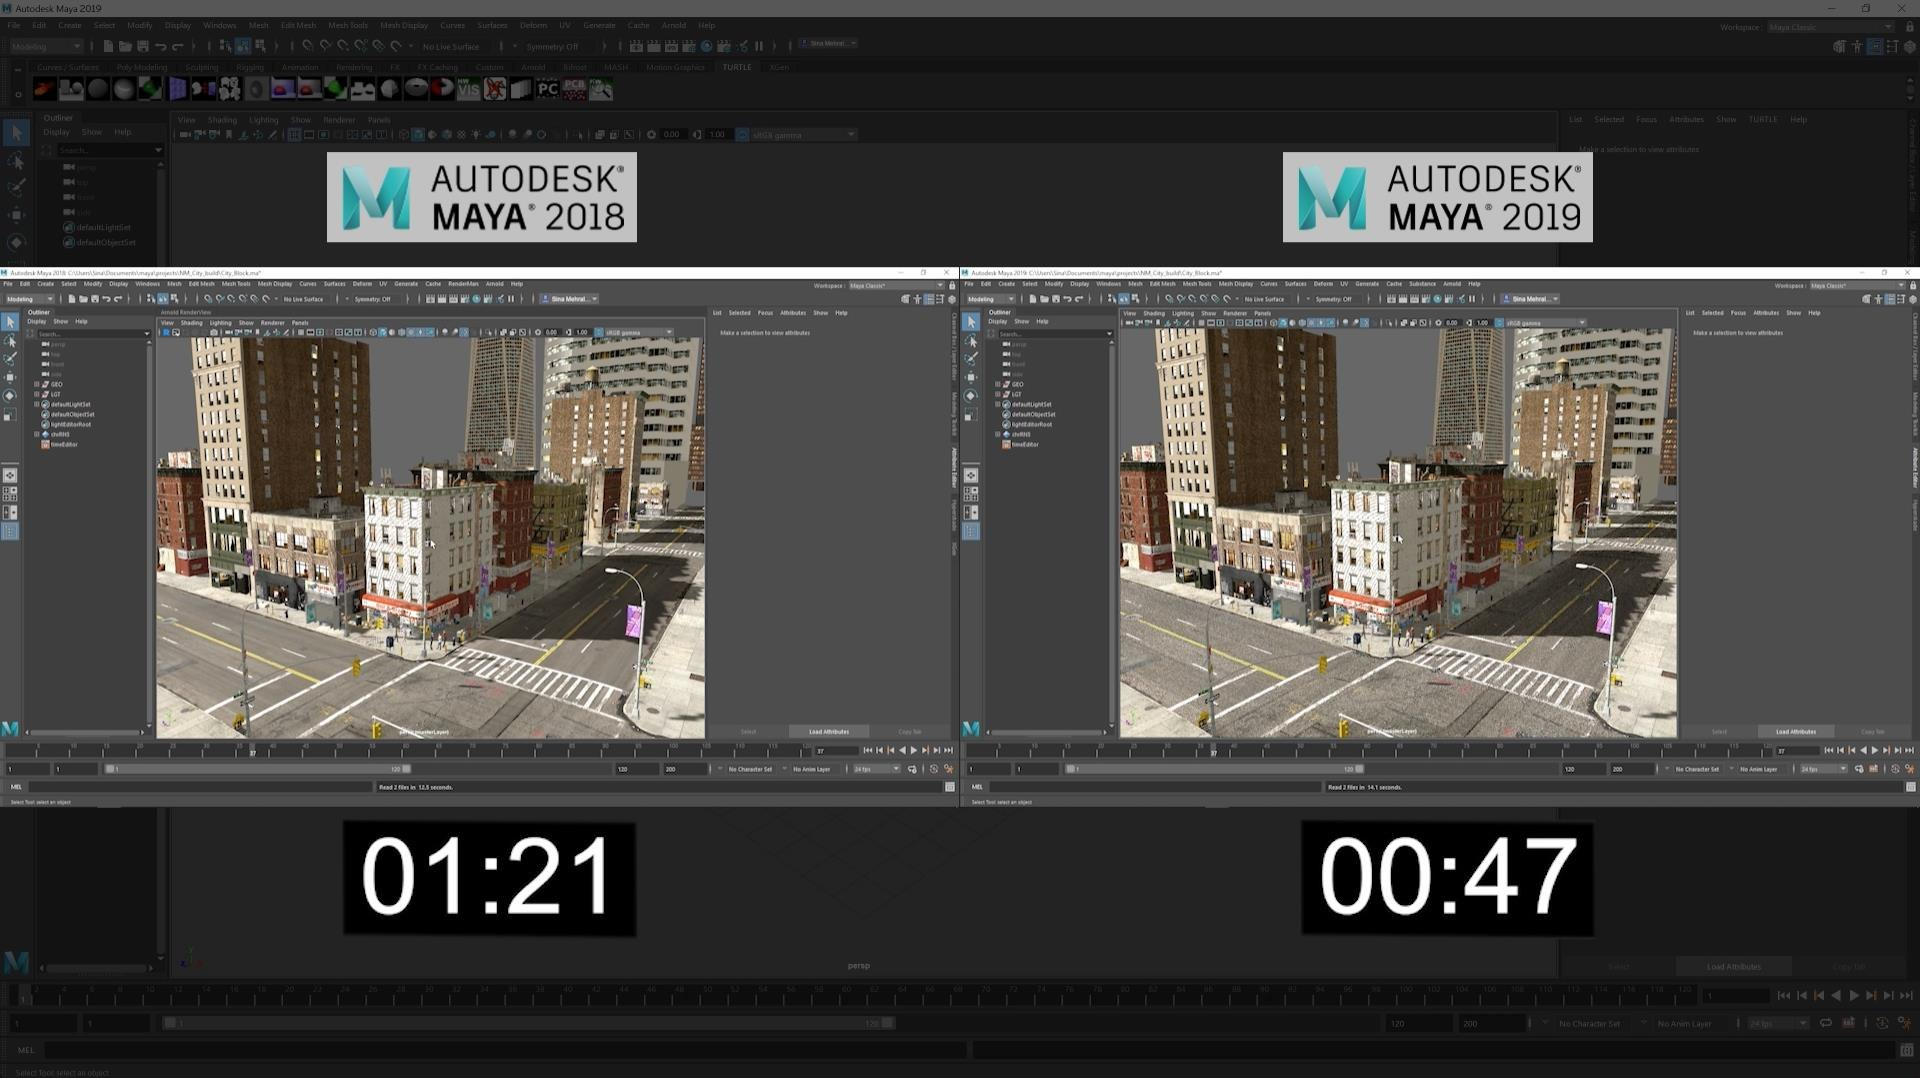 Autodesk Maya 2019 is Here | Animation World Network